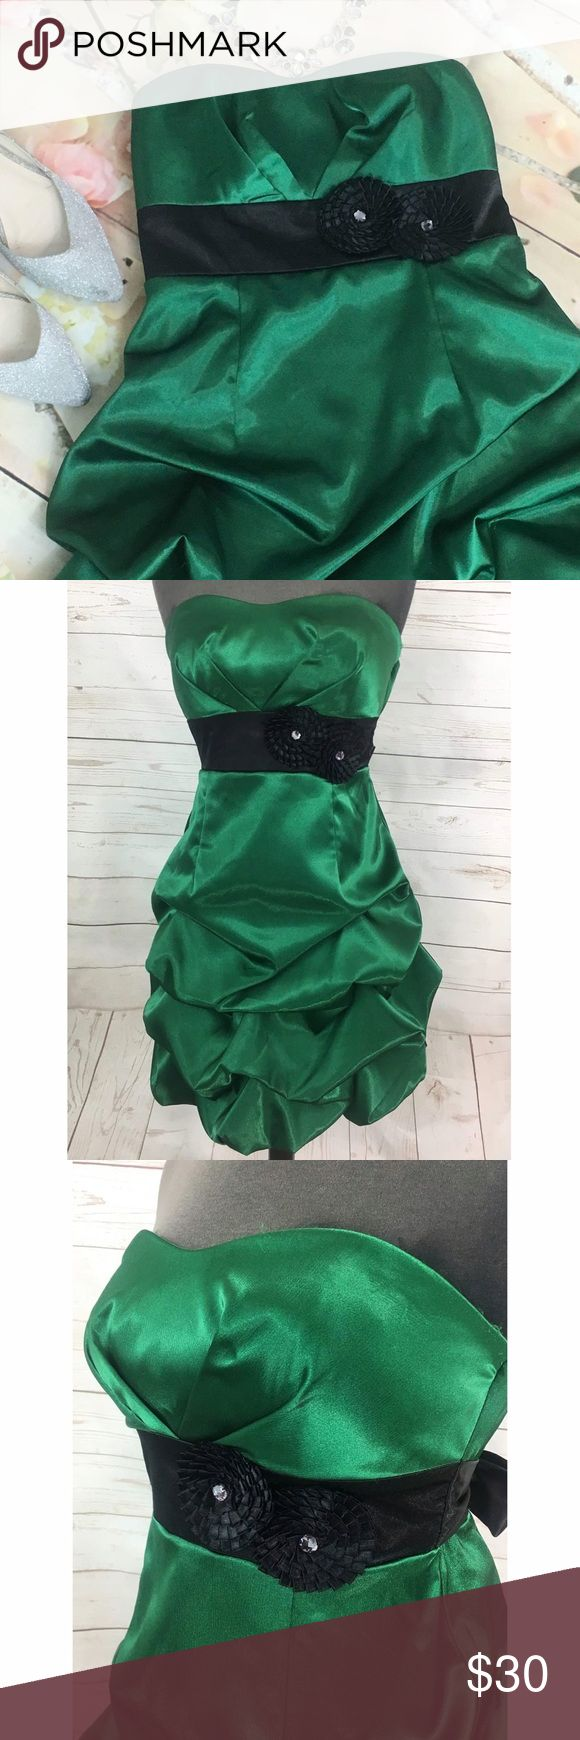 "Emerald Green Holiday Dress w/ a pick up skirt ""Own the room in this stunning Emerlad green cocktail dress. Perfect for the holidays. This strass dress is made of 95% Polyester and 5% Spandex, Lininf 100% polyester. Features a sweetheart neckline, a pick up balloon skirt and a black tie back belt with front embelishments. Made in the Philippines. Measurements laying flat B: 13"""" W: 12.5"""" L:27"""" fits a juniors size 5. "" Iz Byer Dresses Strapless"